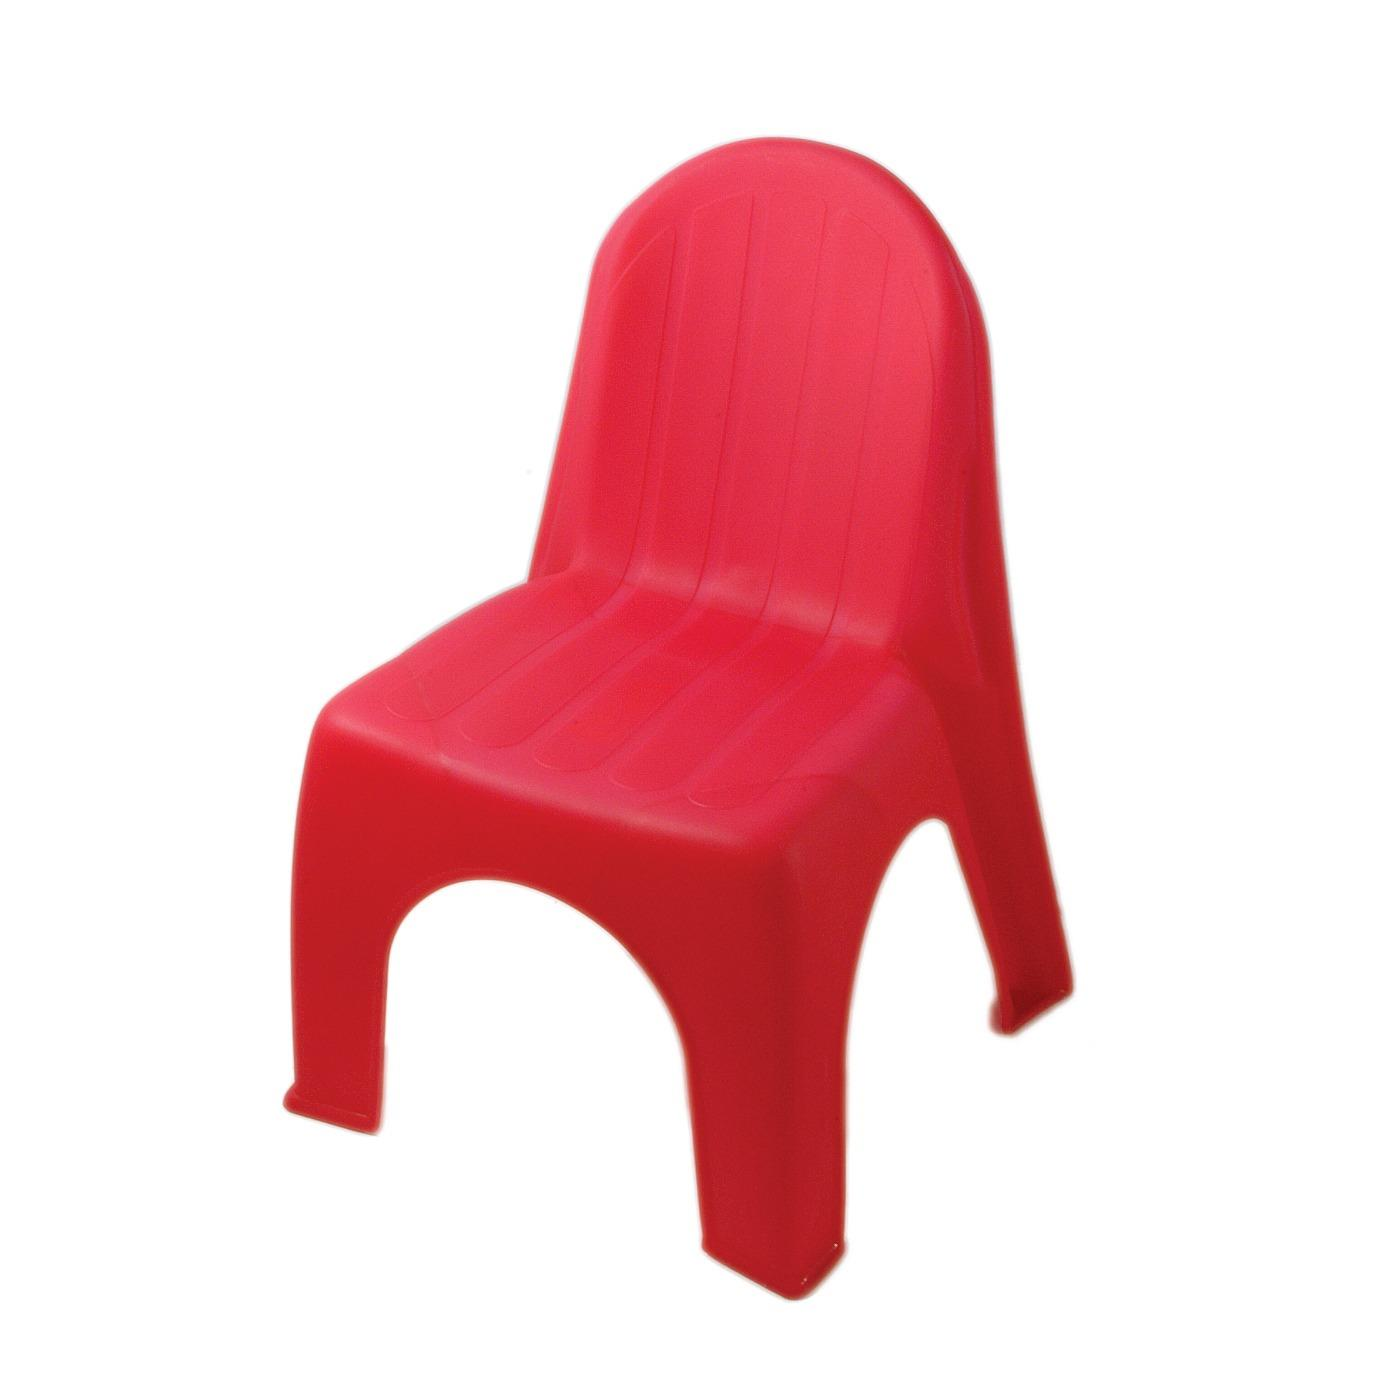 Plastic Children's Chair - Pink